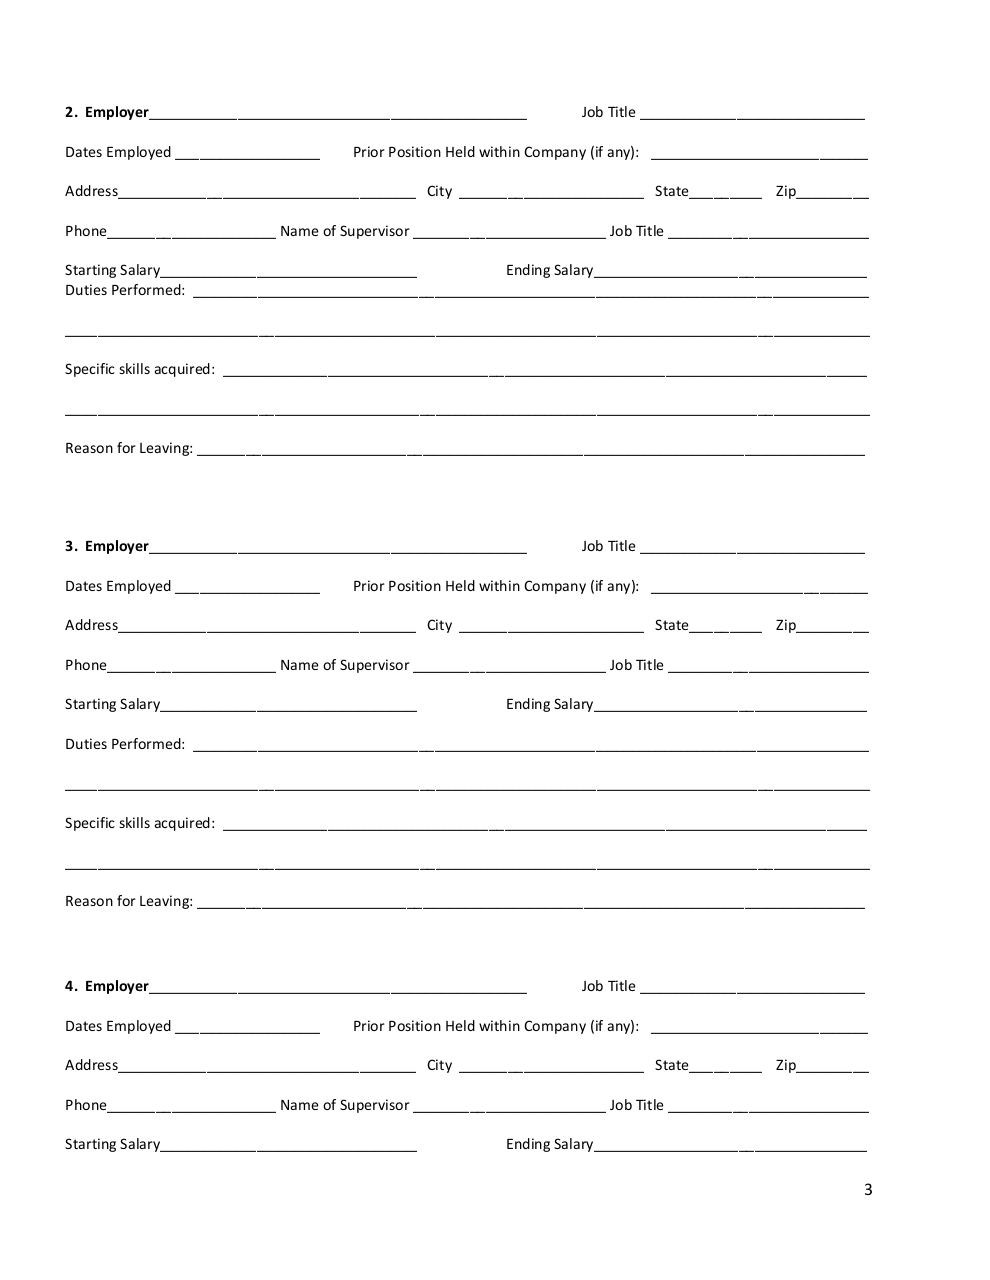 company name by patrick dells vet standard job application form